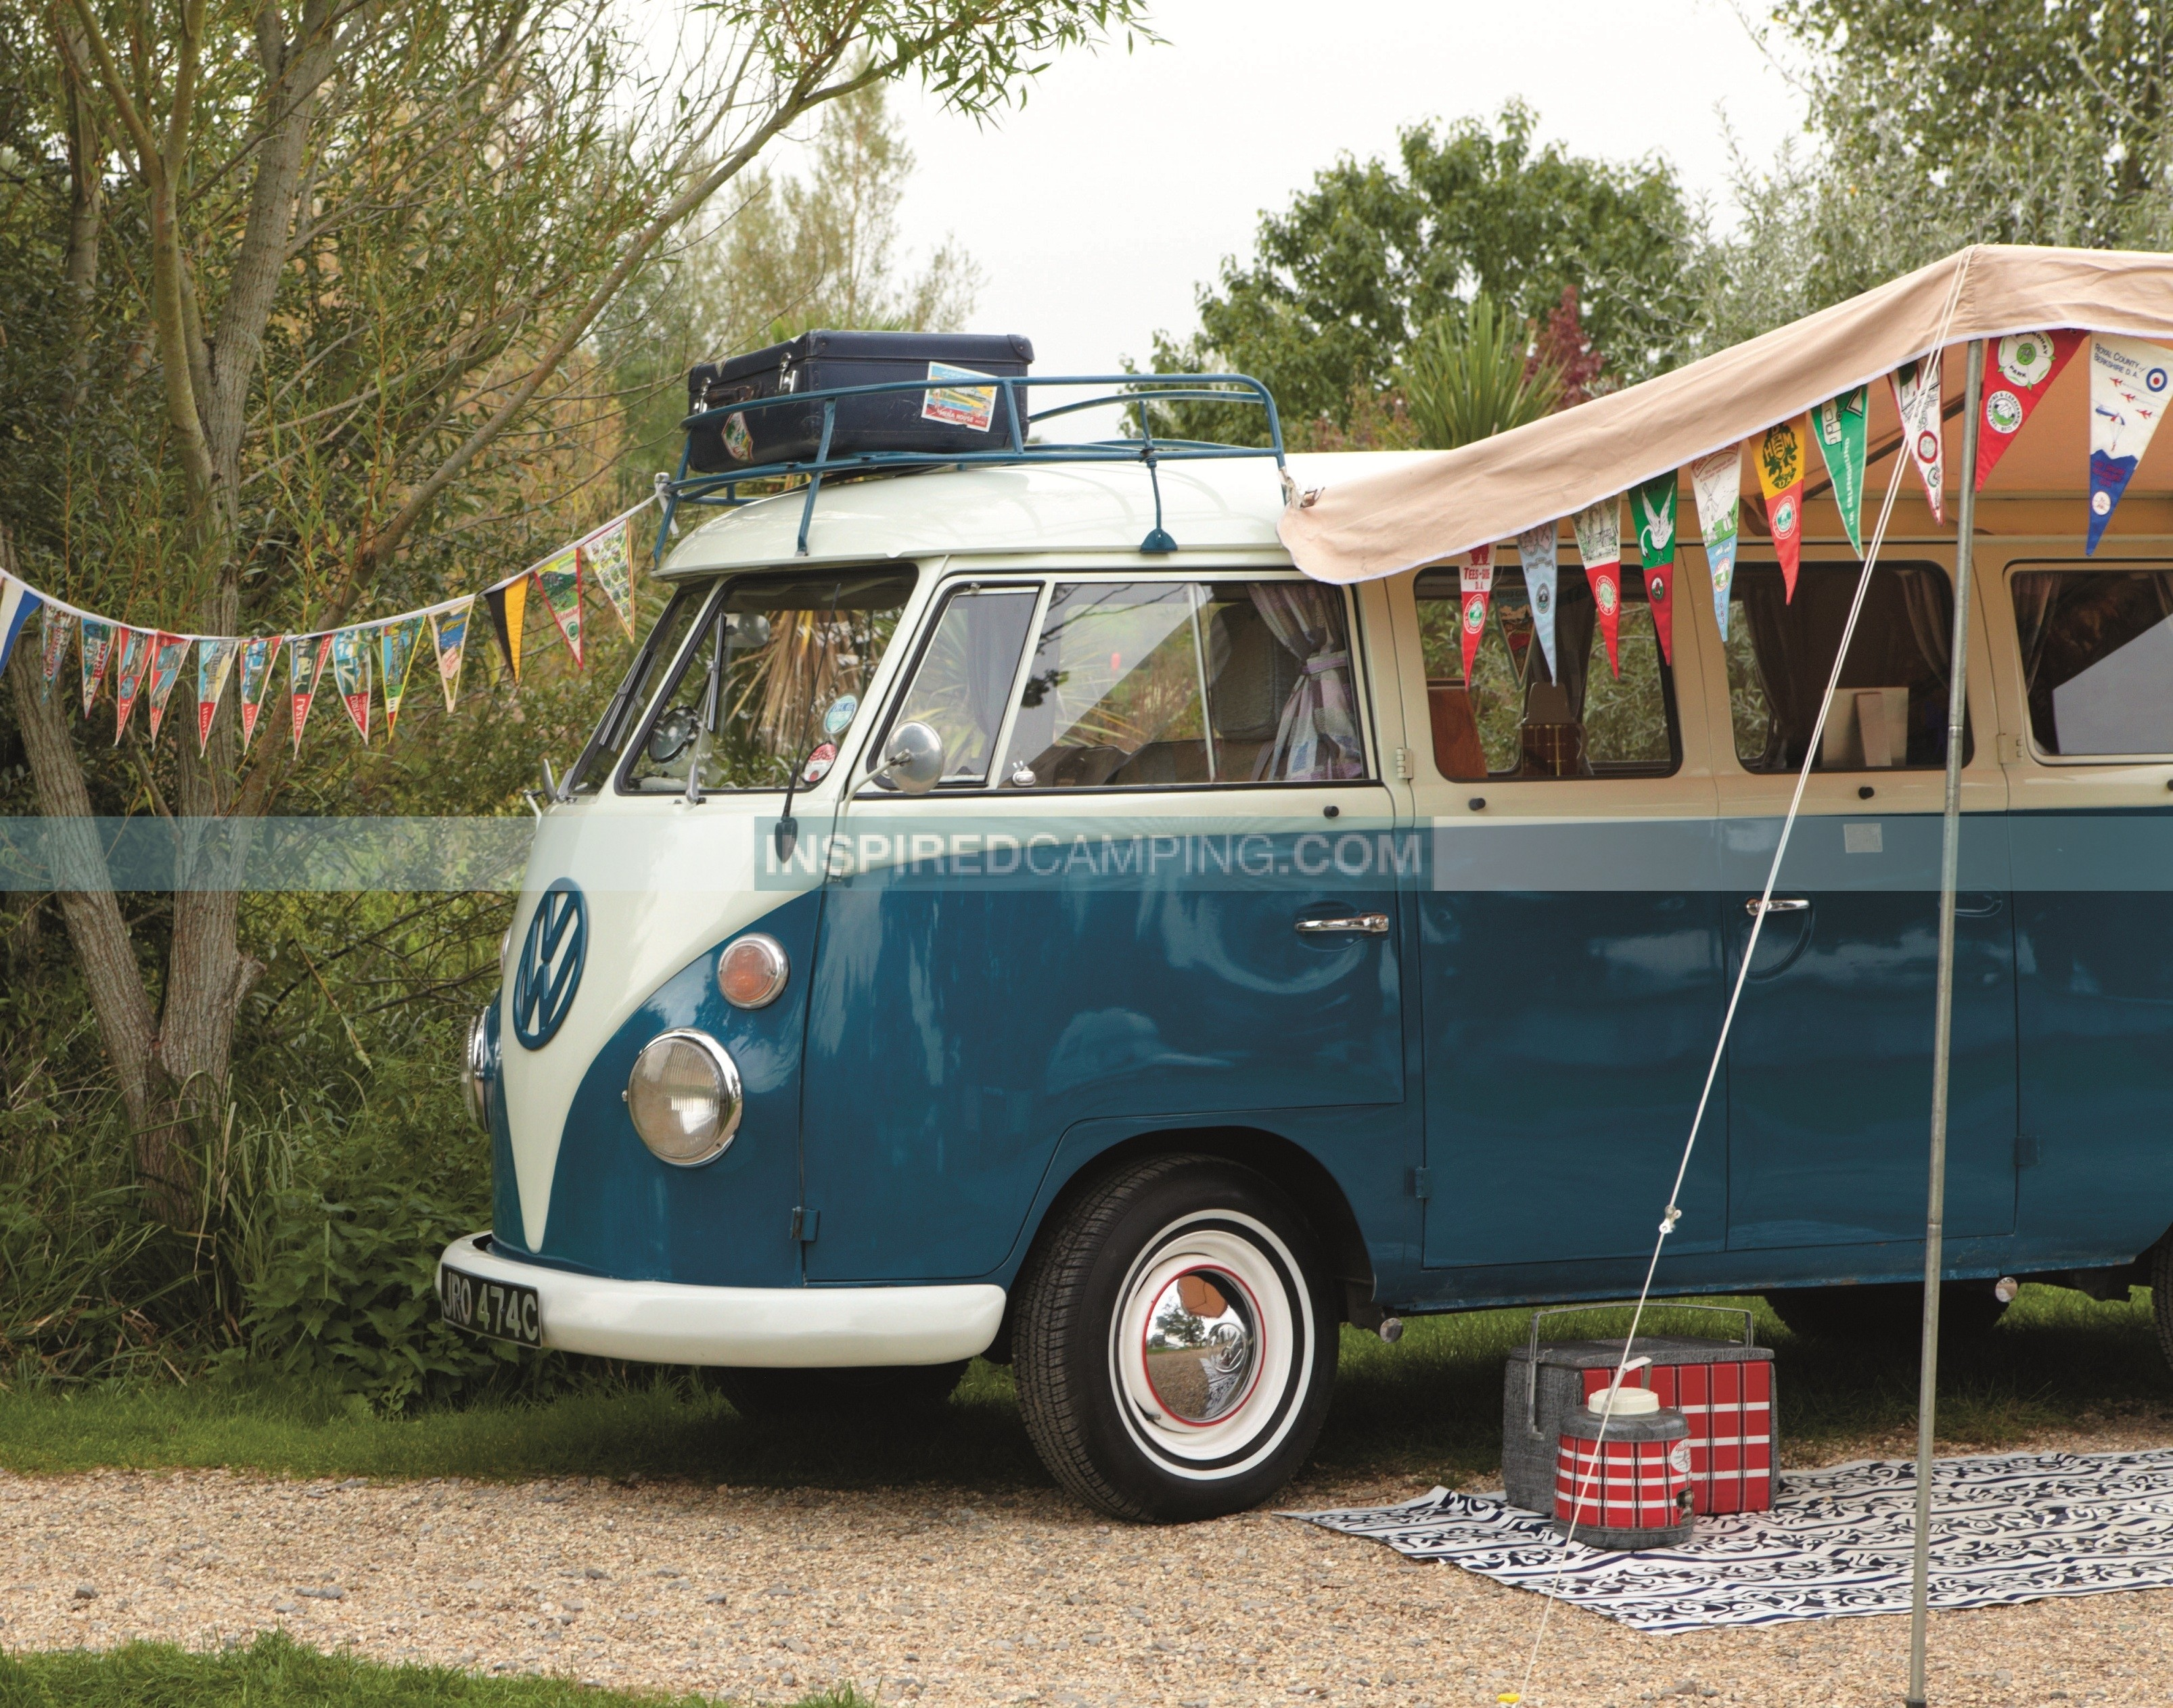 My Cool Campervan, Caravan and Camping Site - Cool Camping Site